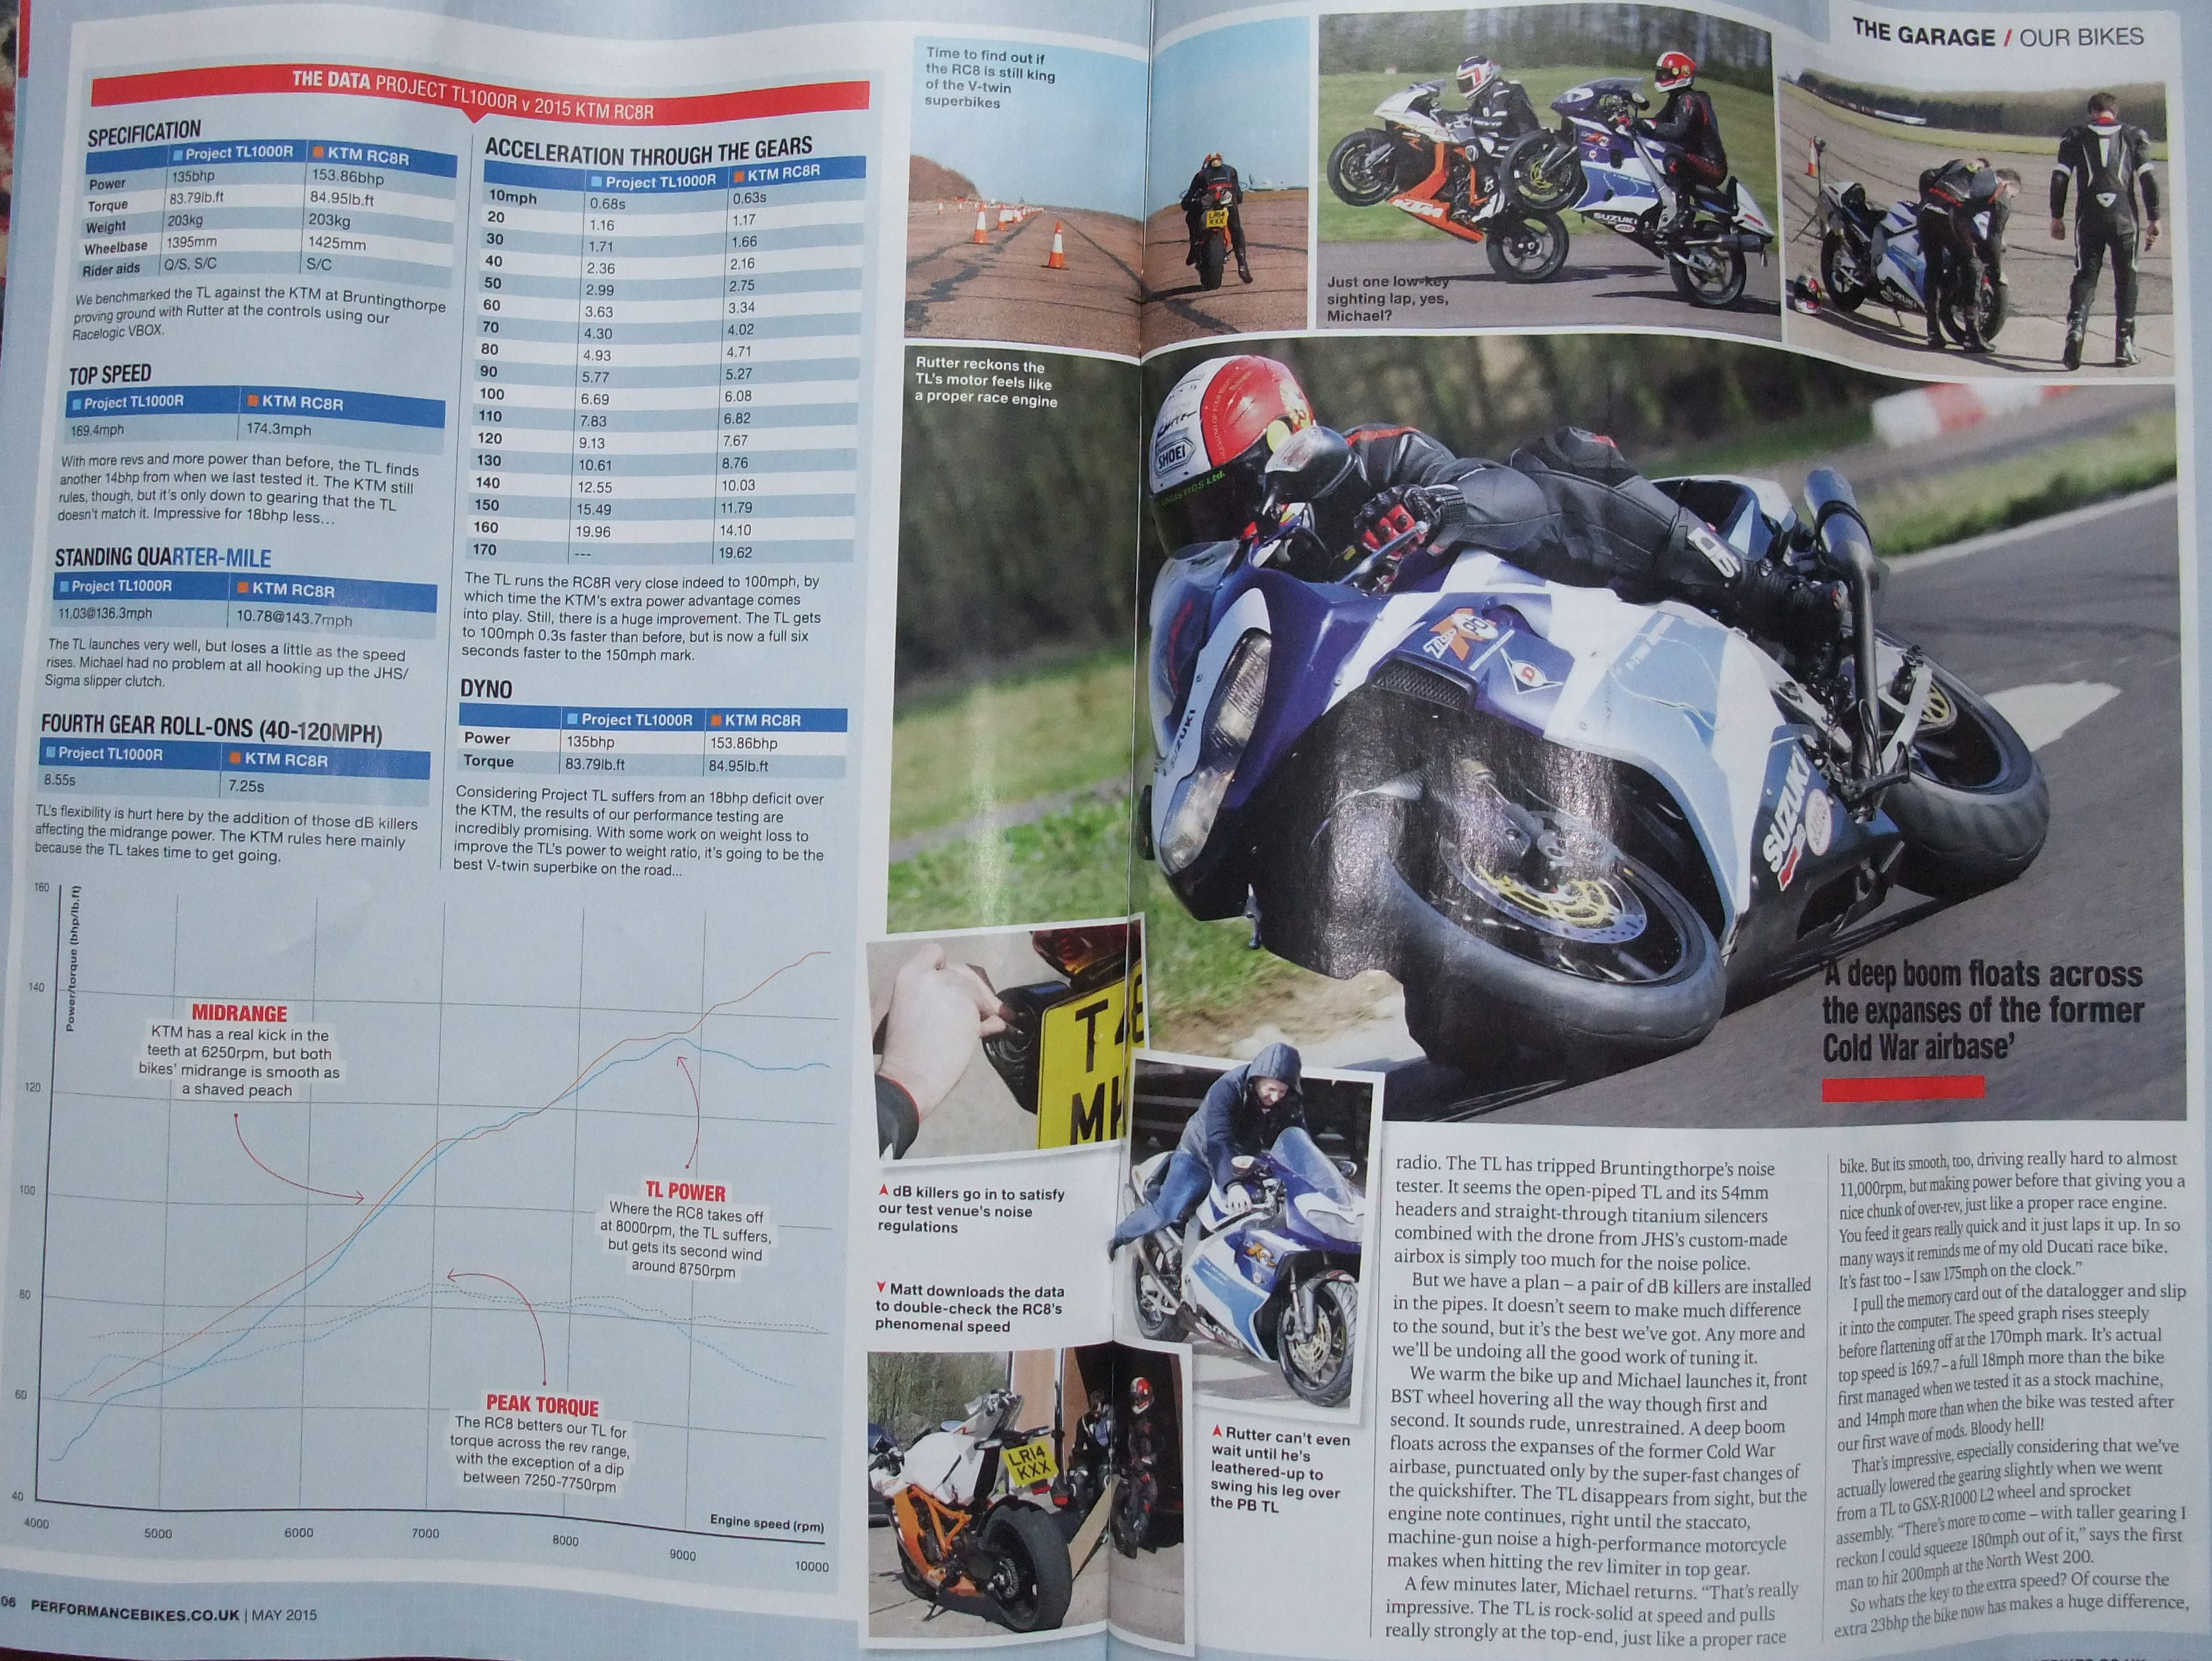 performance bike tl1000r article review